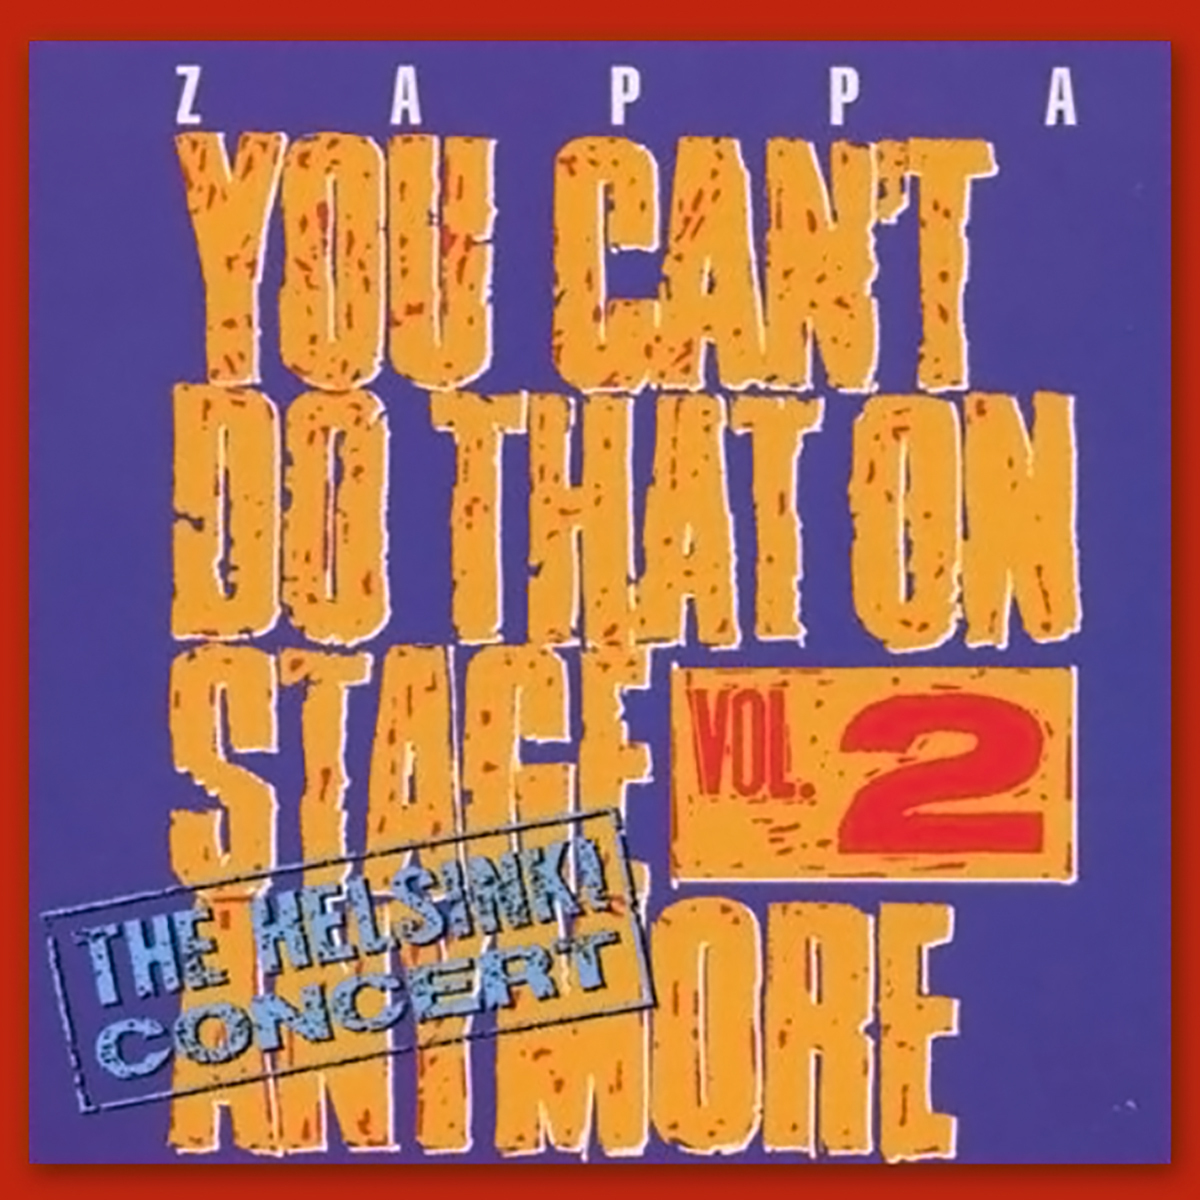 Frank Zappa - You Can't Do That On Stage Anymore, Vol. 2 (1988)